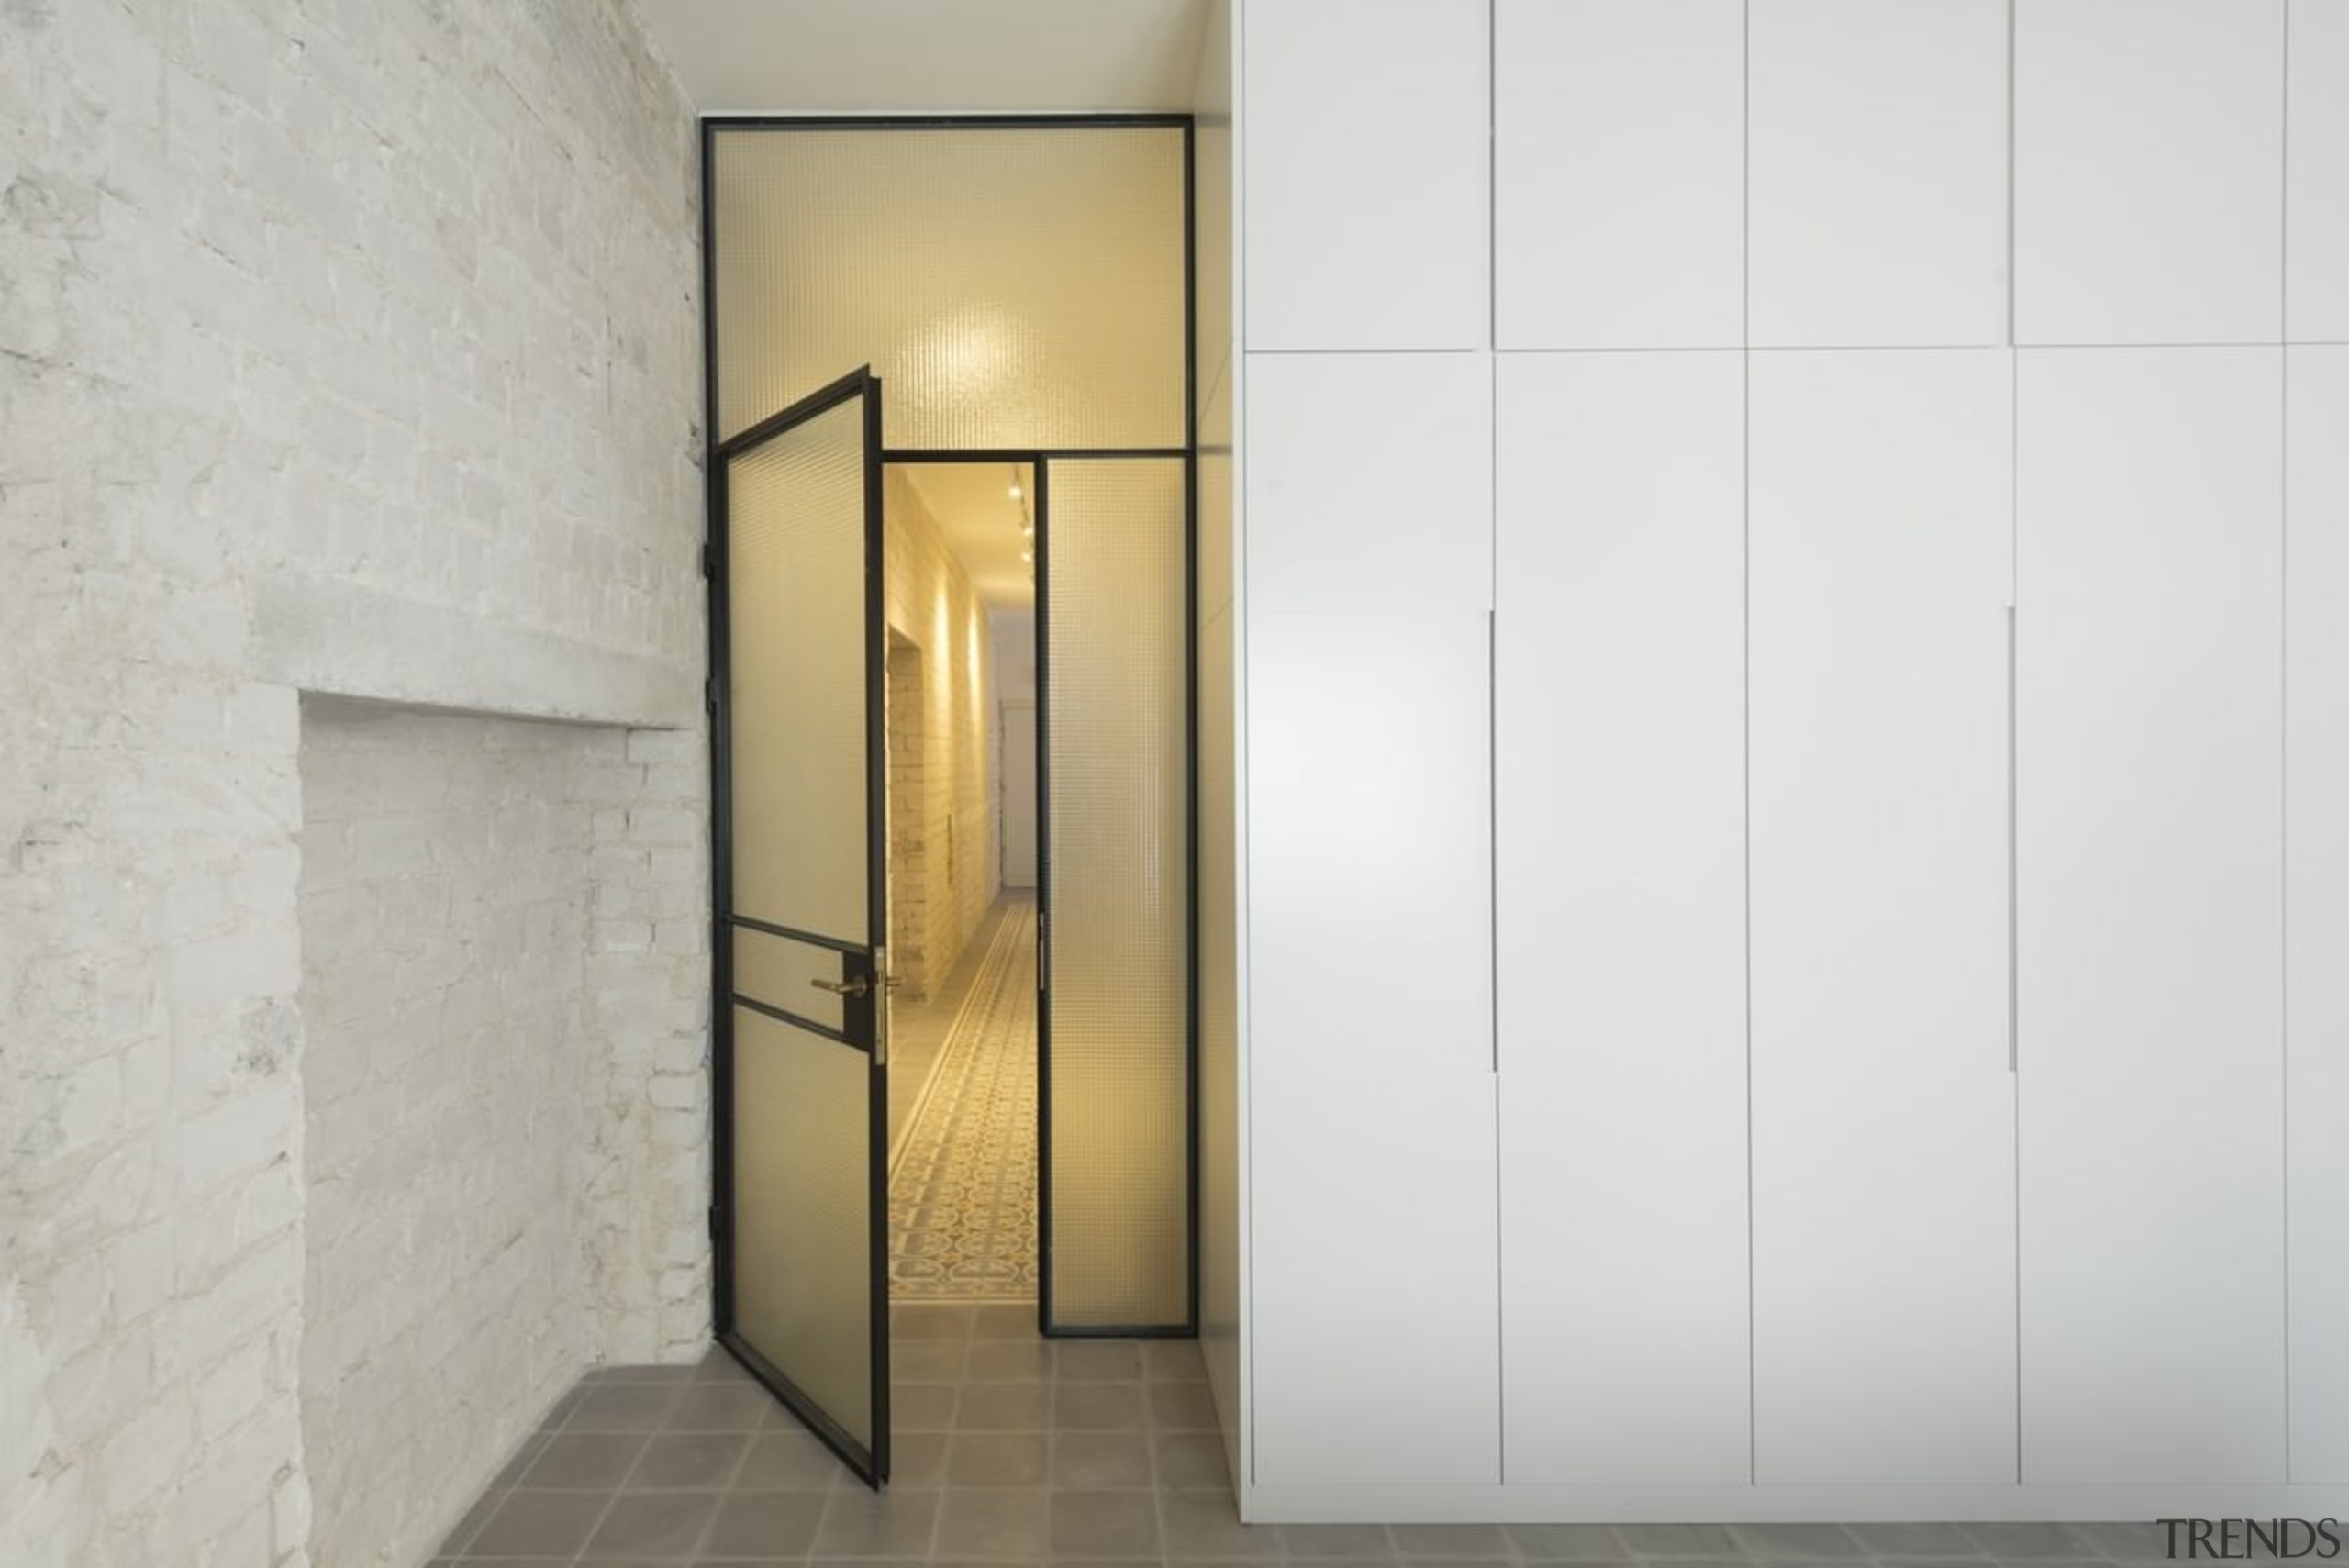 Tall cabinets mean ample, easily accessible storage door, interior design, product design, property, white, gray